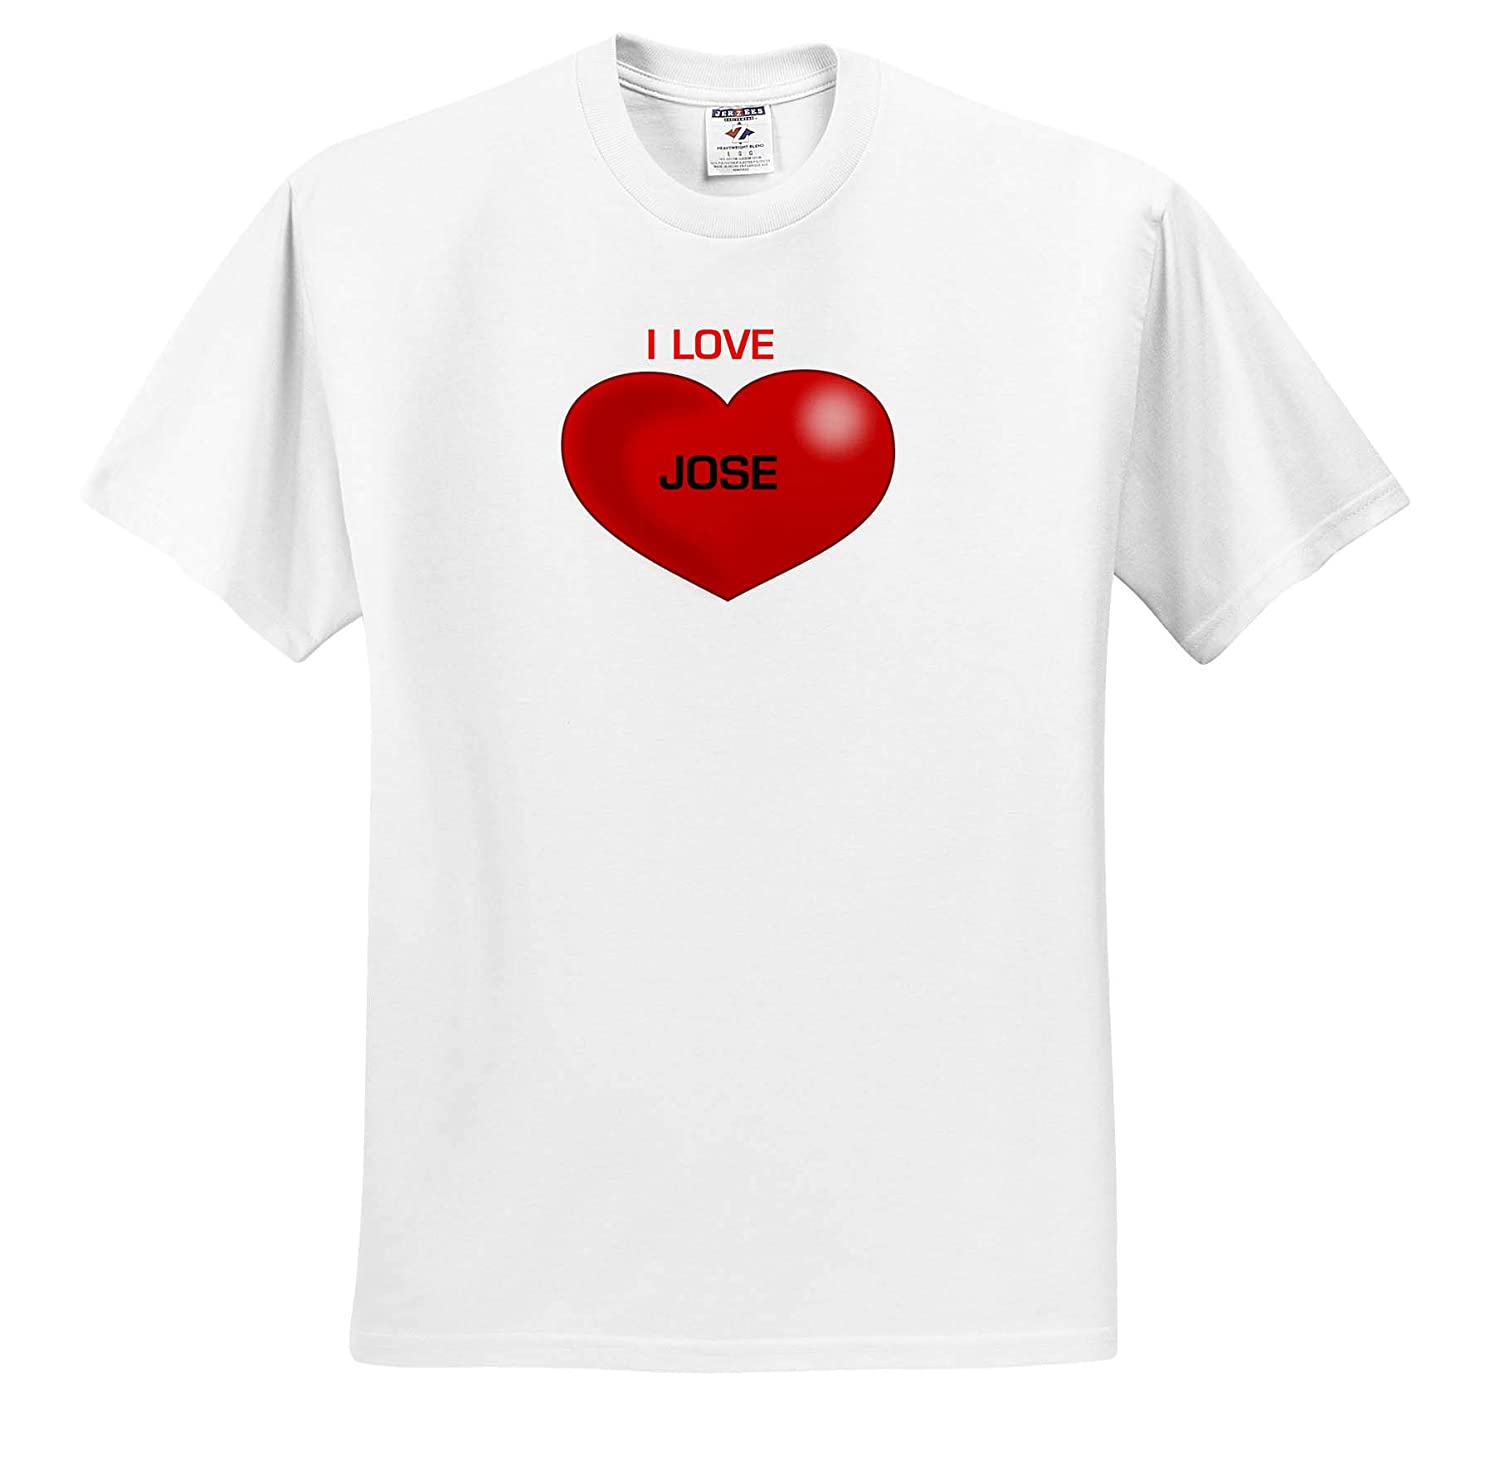 3dRose Lens Art by Florene T-Shirts Image of Big Red Heart Says I Love Jose Love Hearts with Names